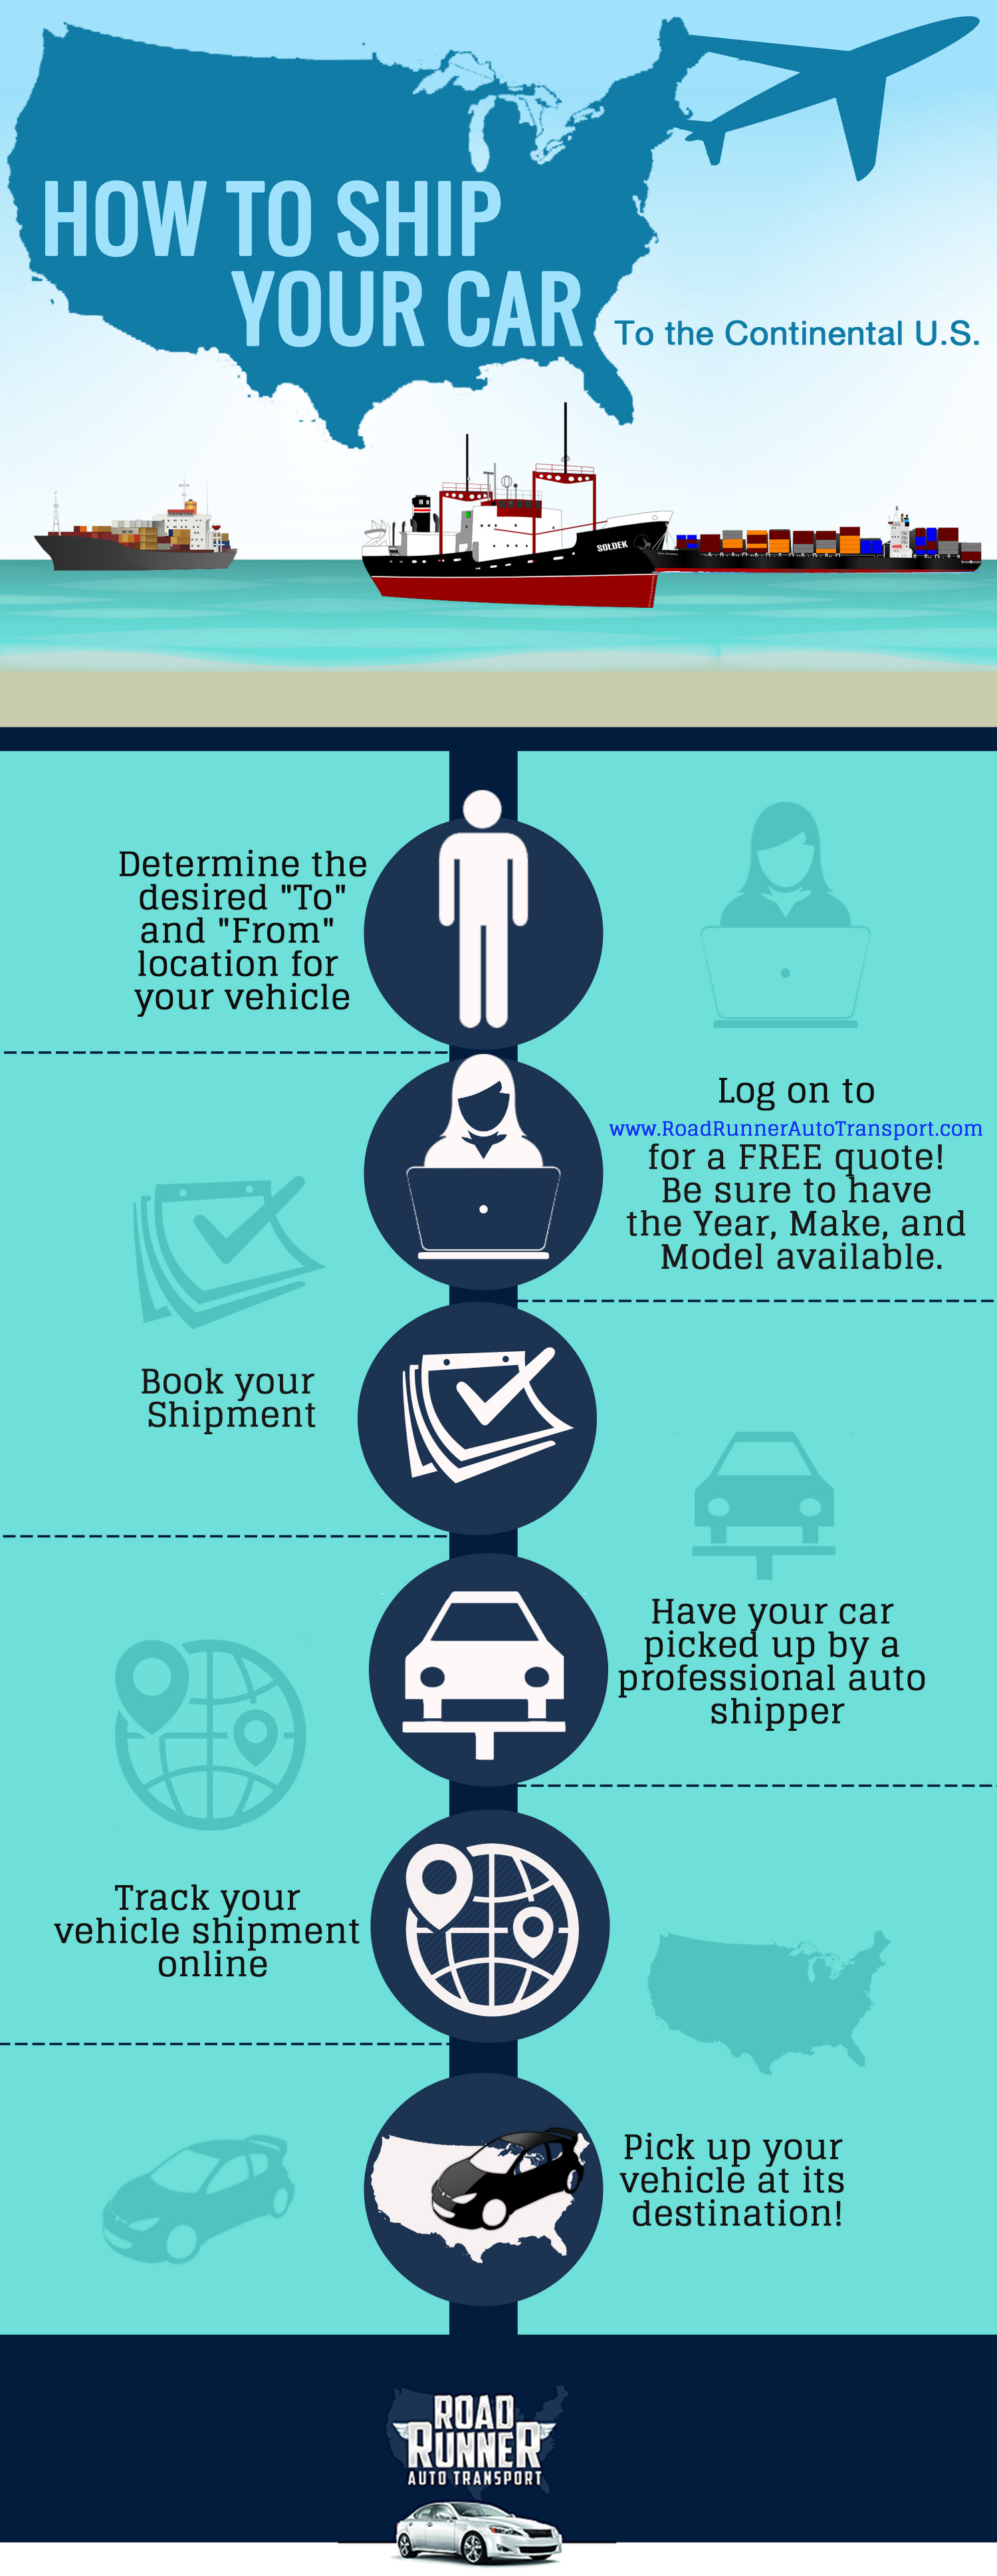 How to Ship Your Car Infographic